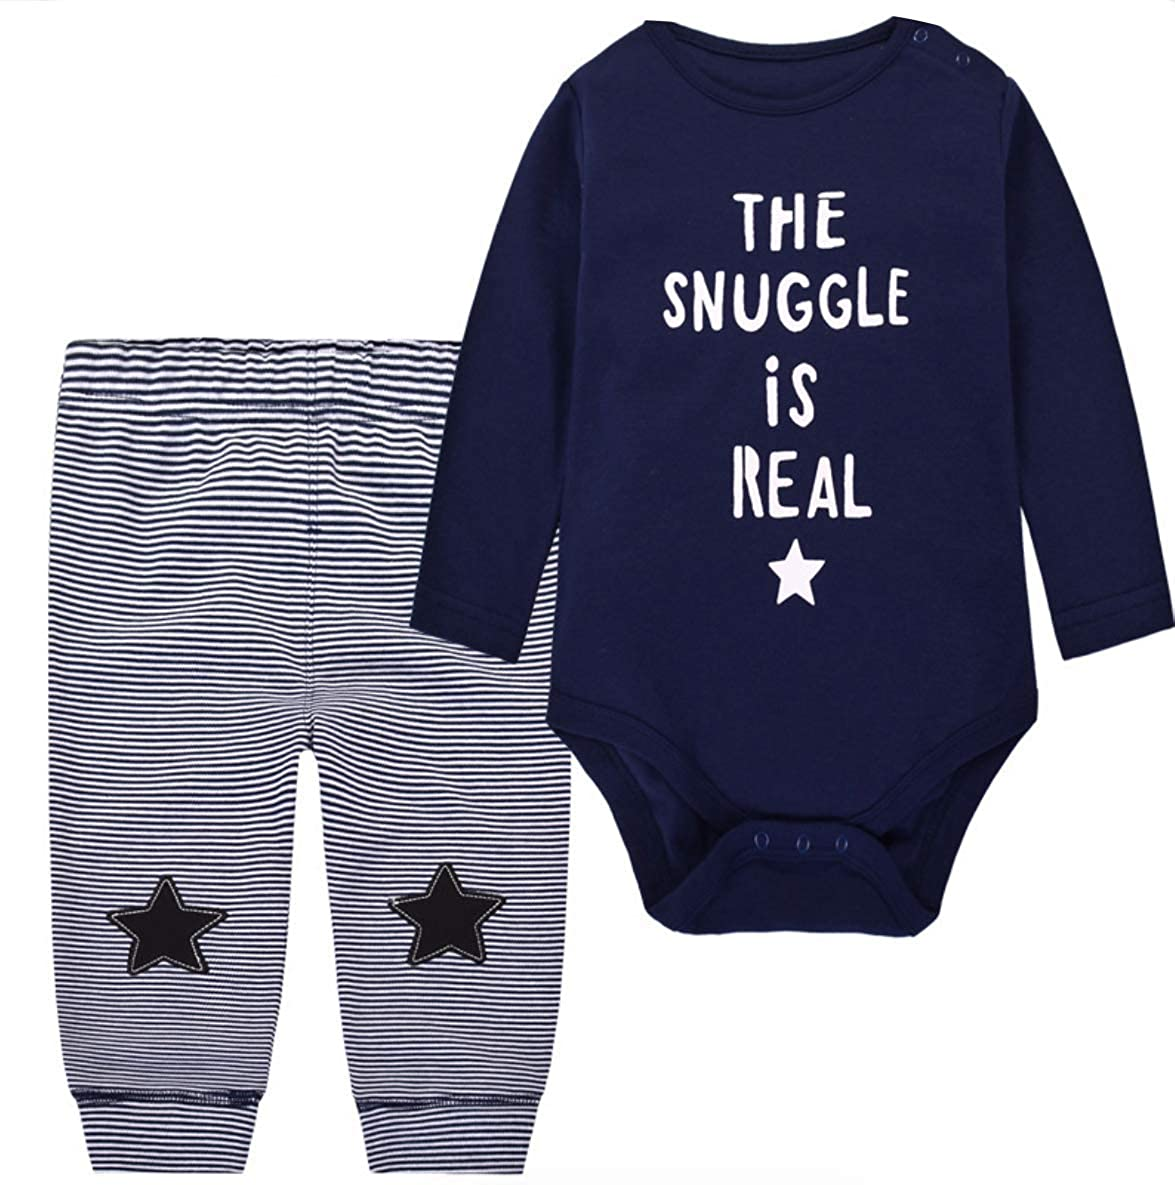 Baby Long and Short Sleeve Pyjamas Set Romper with Bottoms for Baby Boy 12-18 Months, Navy Snuggle